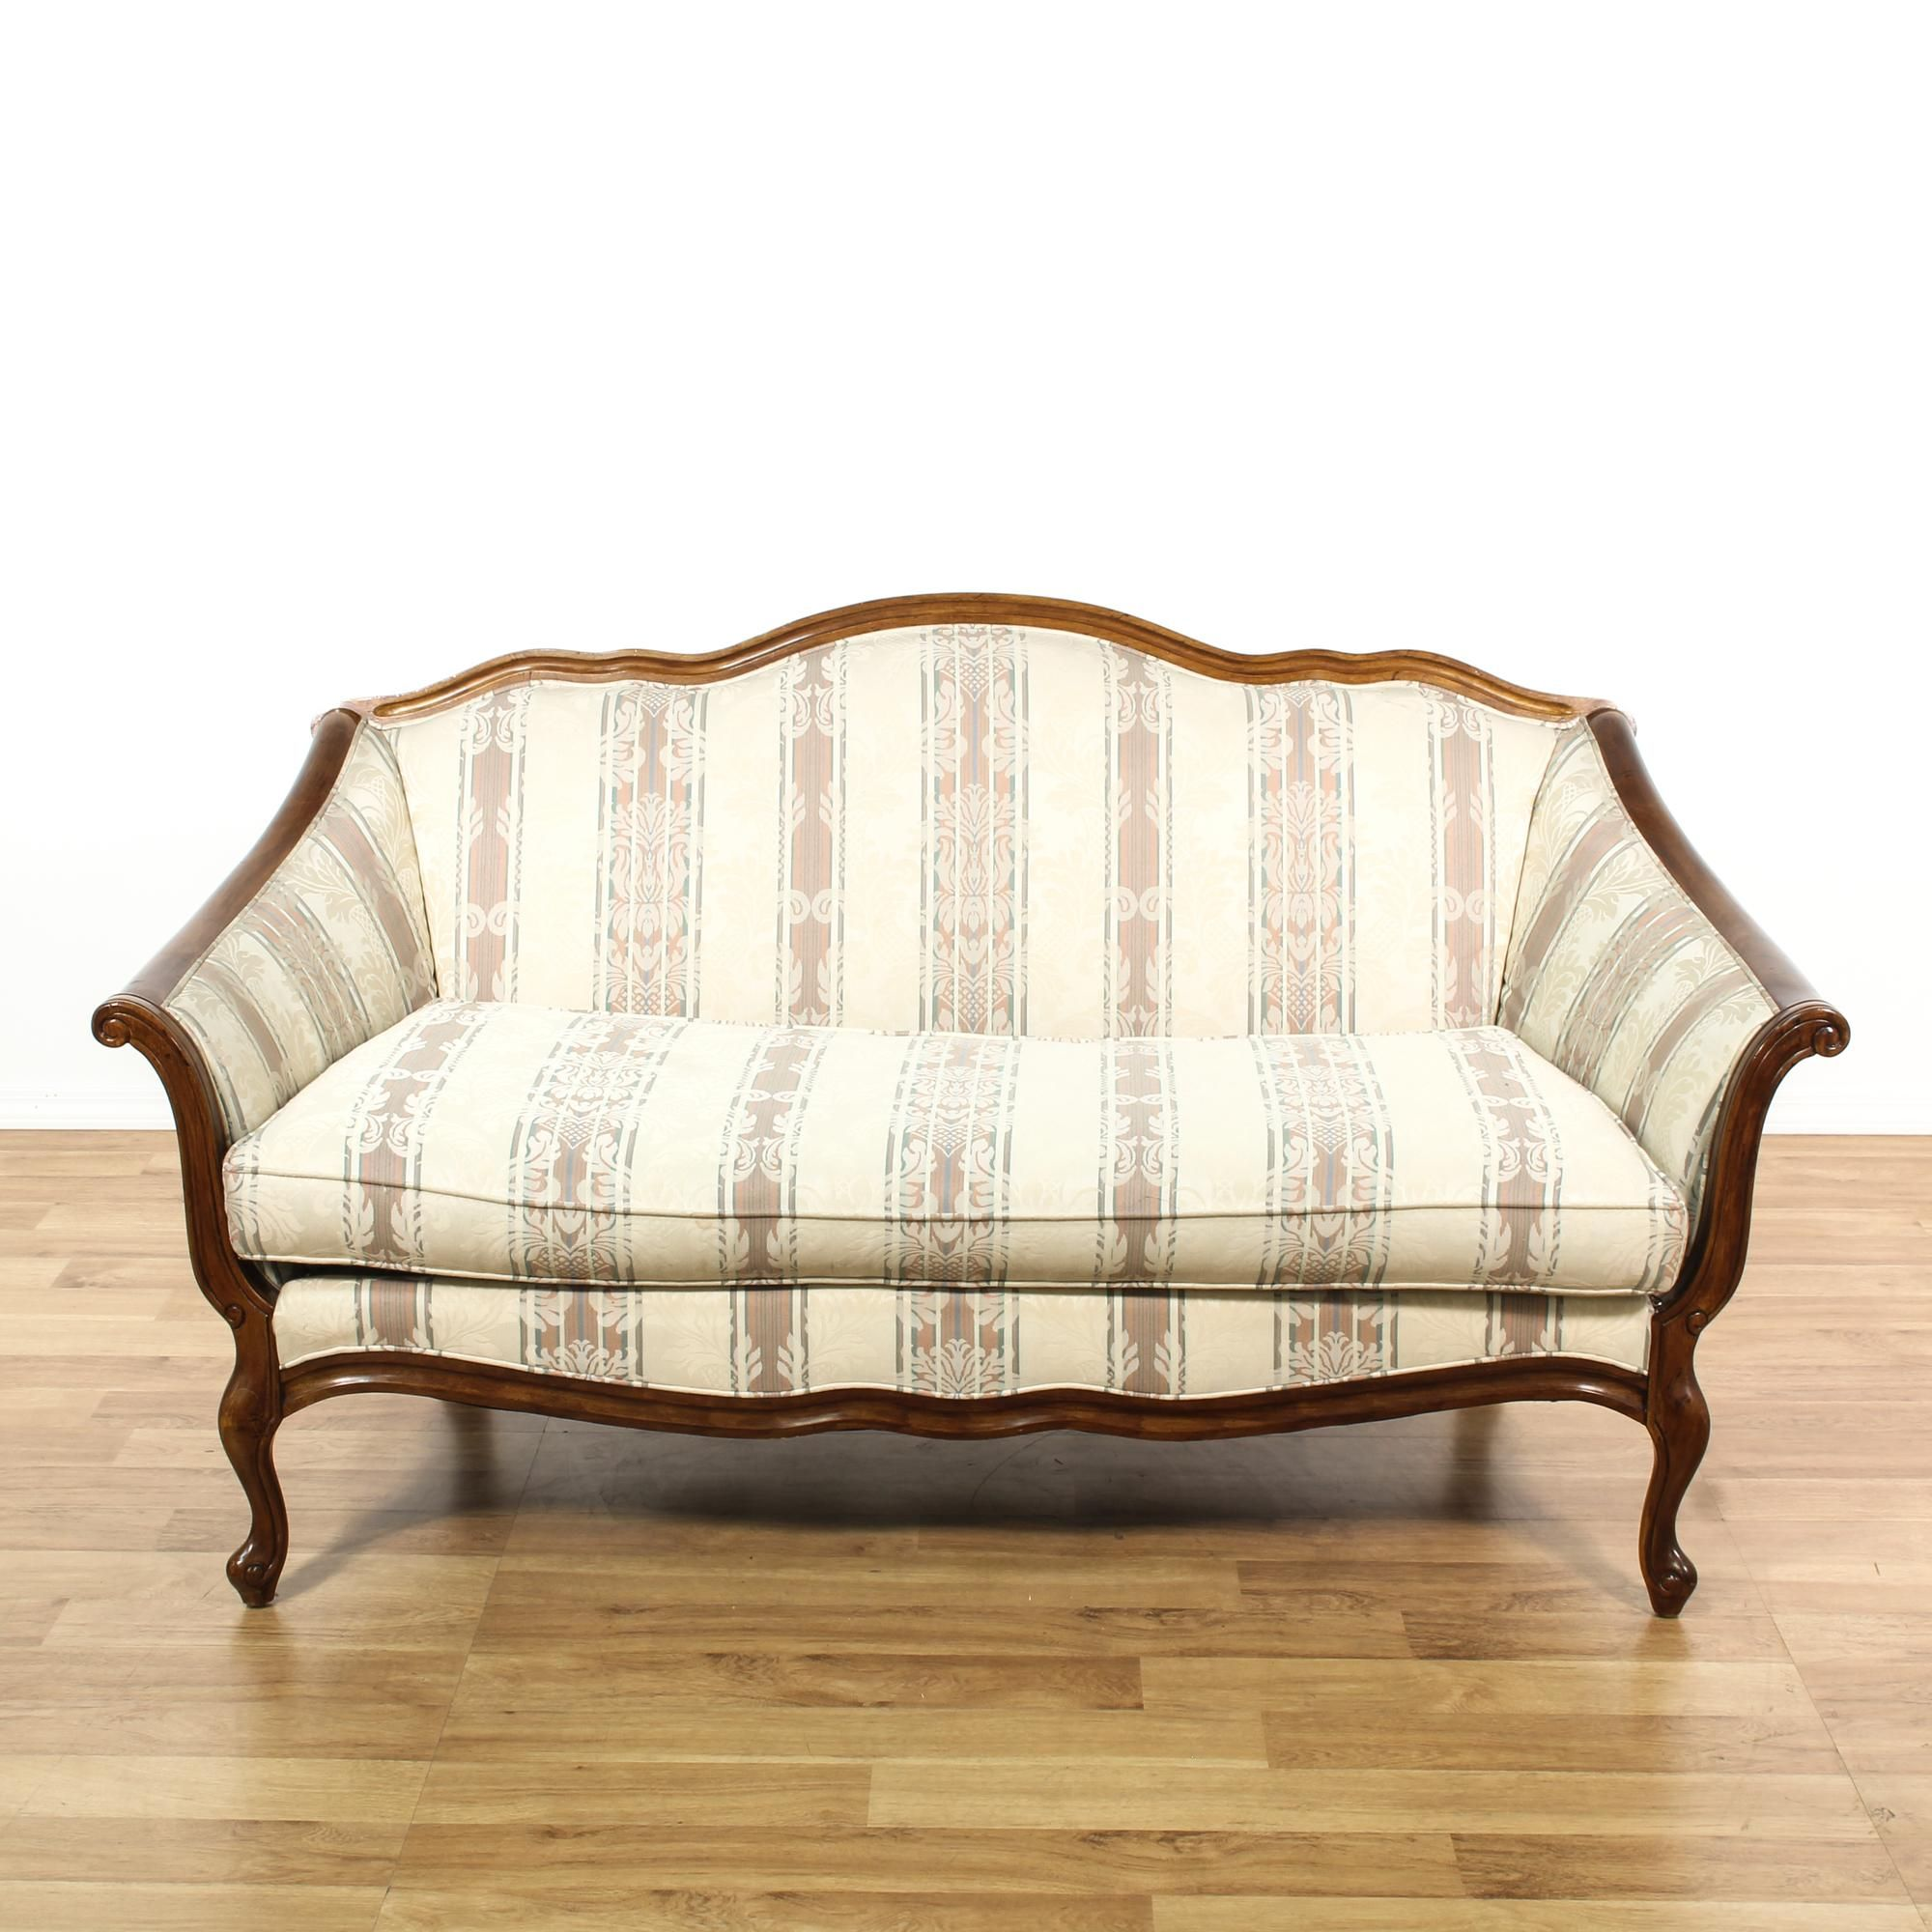 damask sofa bed tonino lamborghini this french provincial loveseat is upholstered in a off